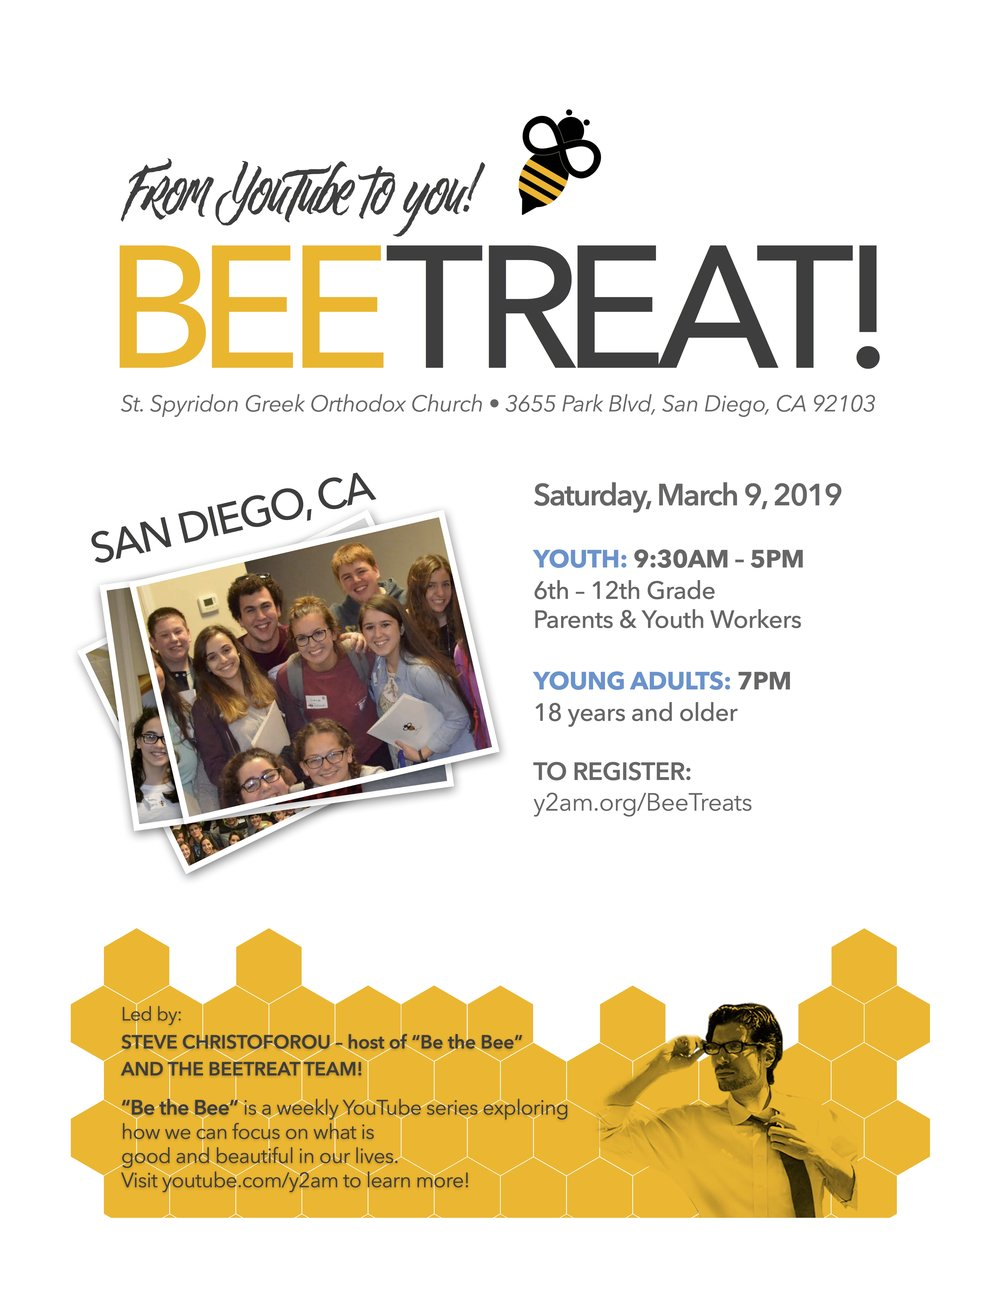 San Diego BeeTreat Flier.jpg